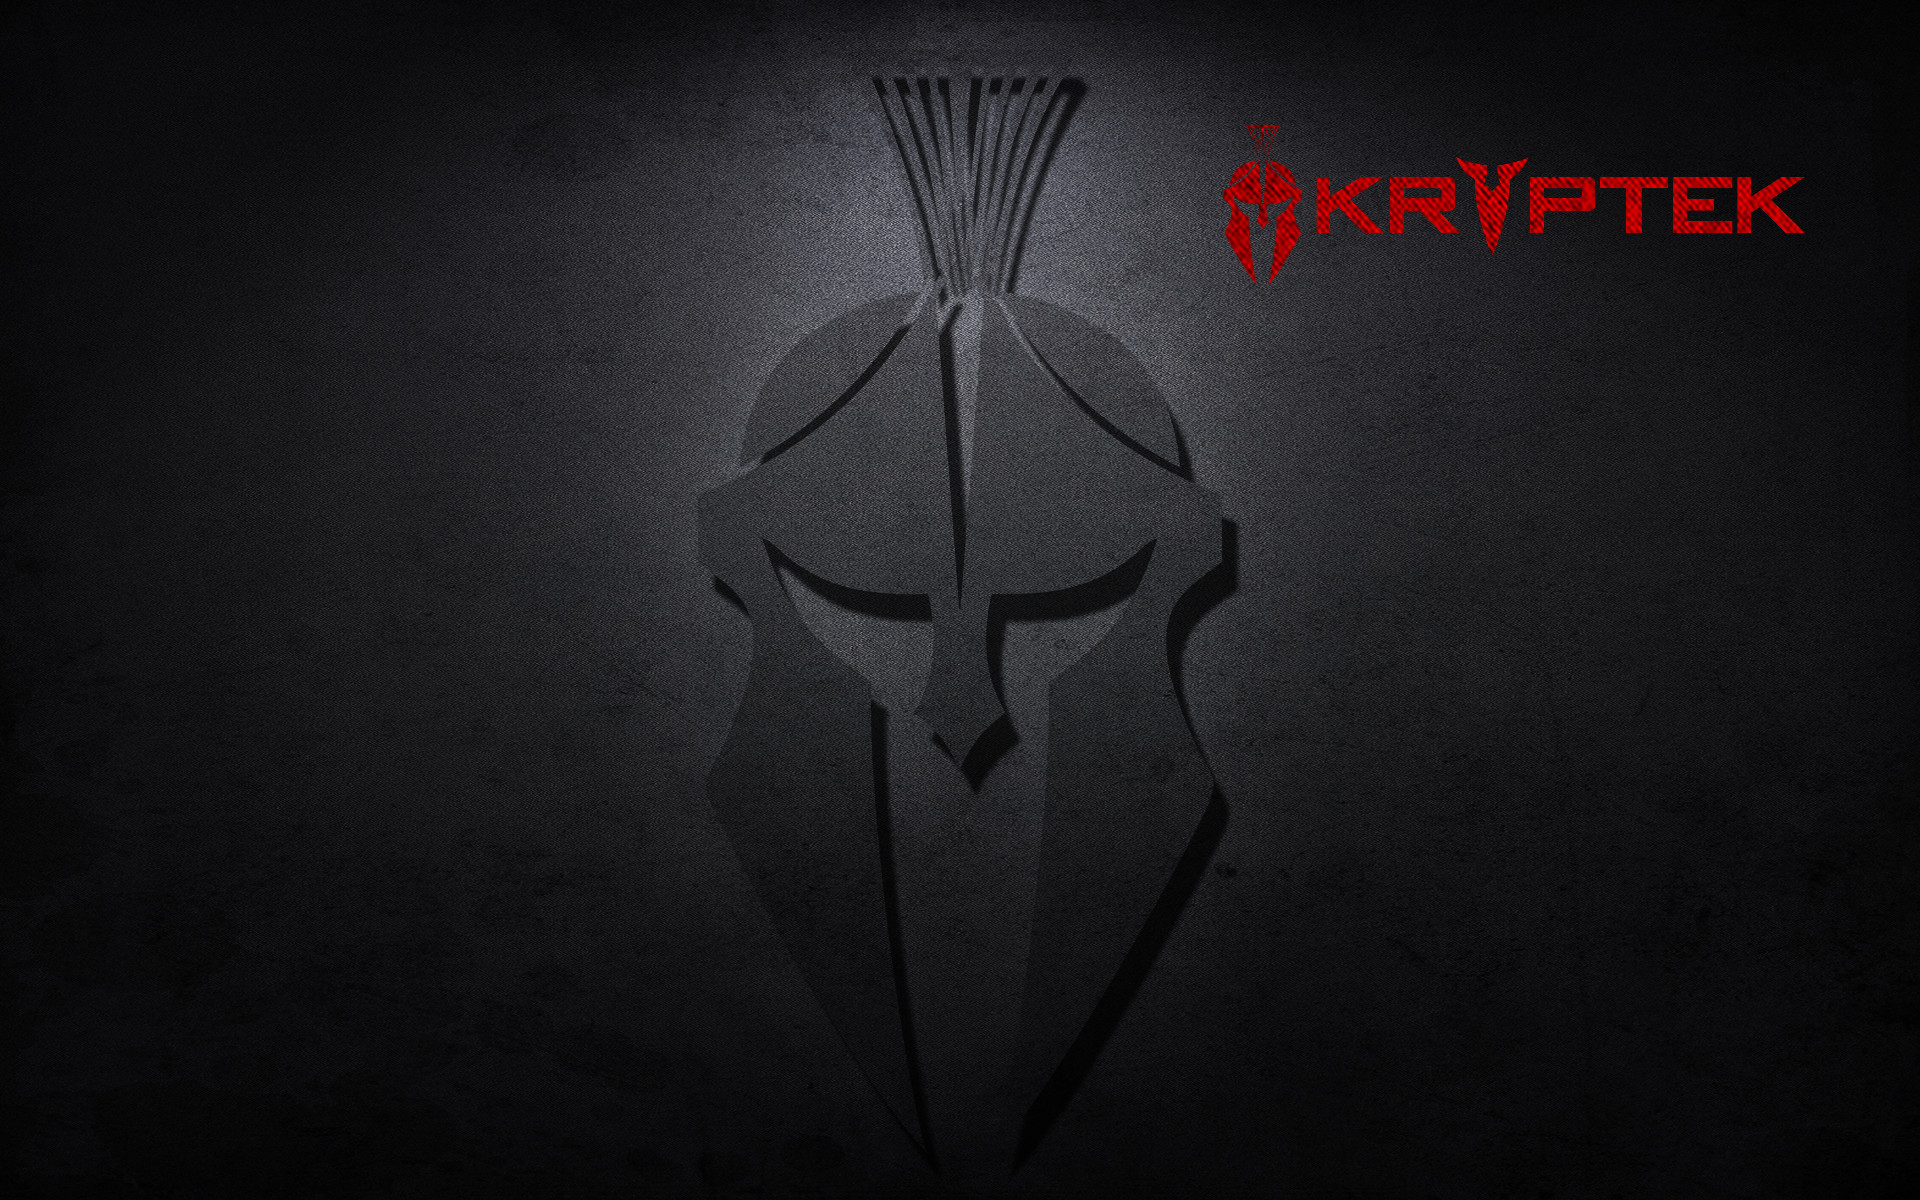 Kryptek Logo Wallpaper: Black And White Camo Wallpaper (64+ Images